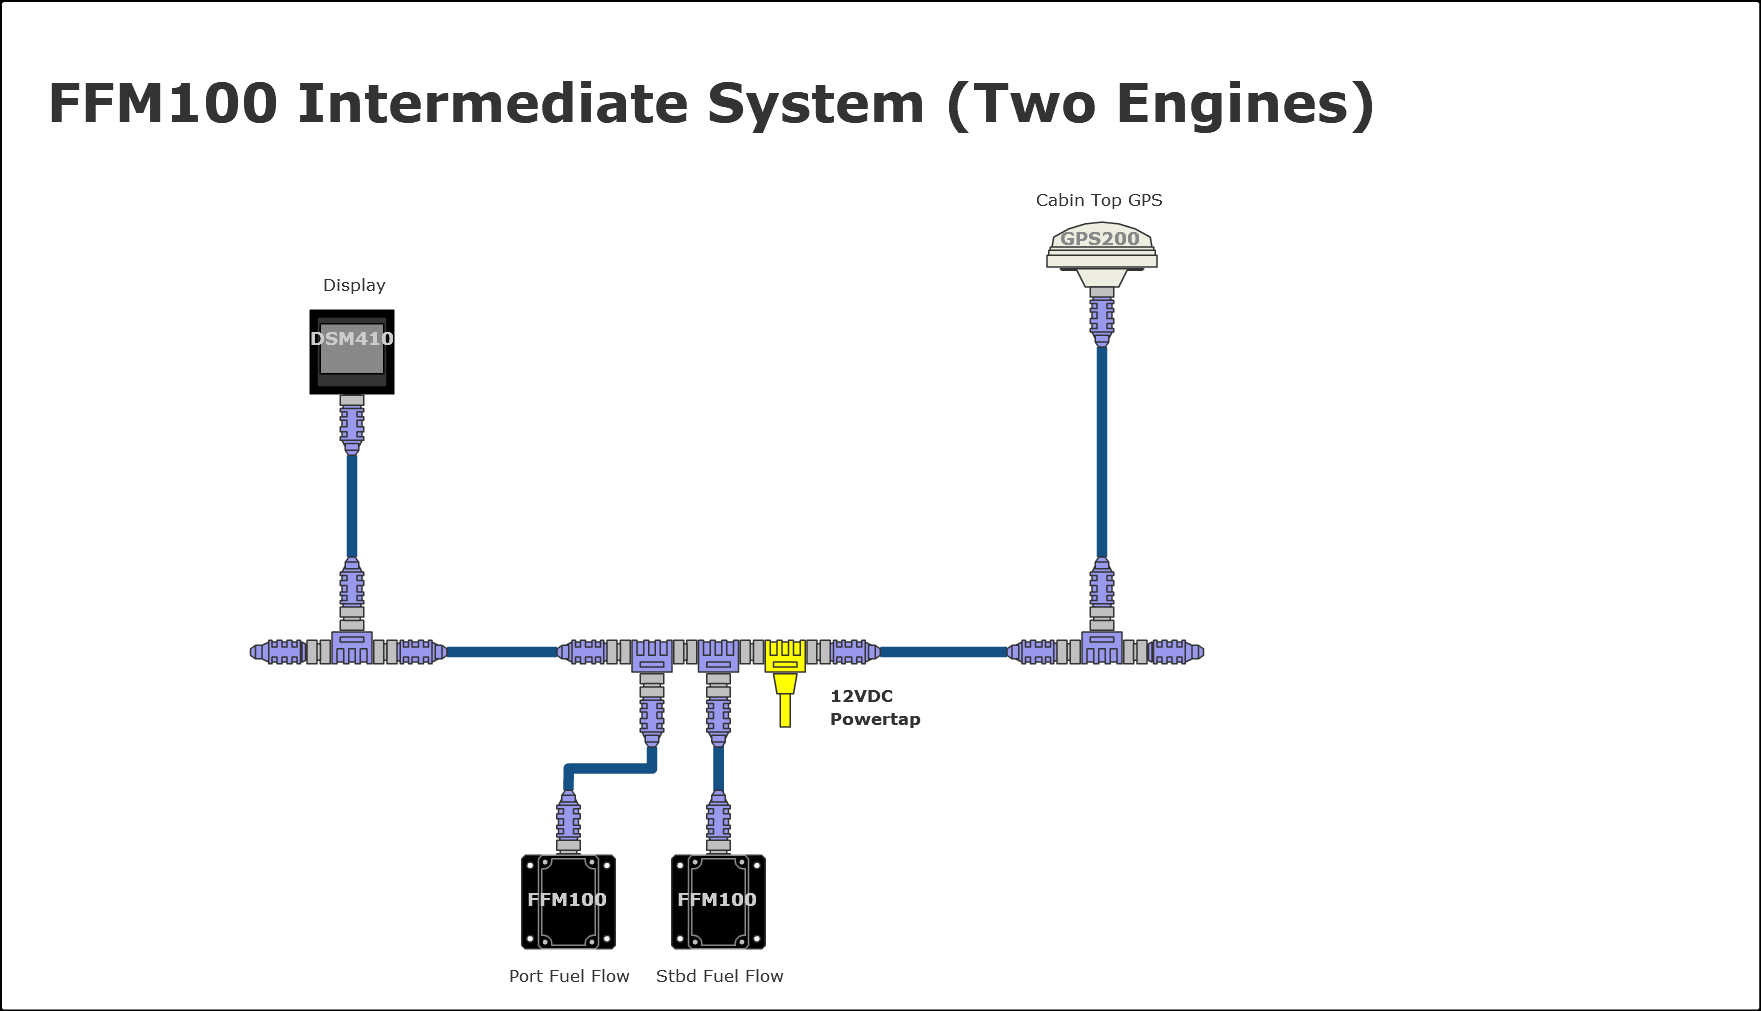 hight resolution of intermediate system two engines network diagram